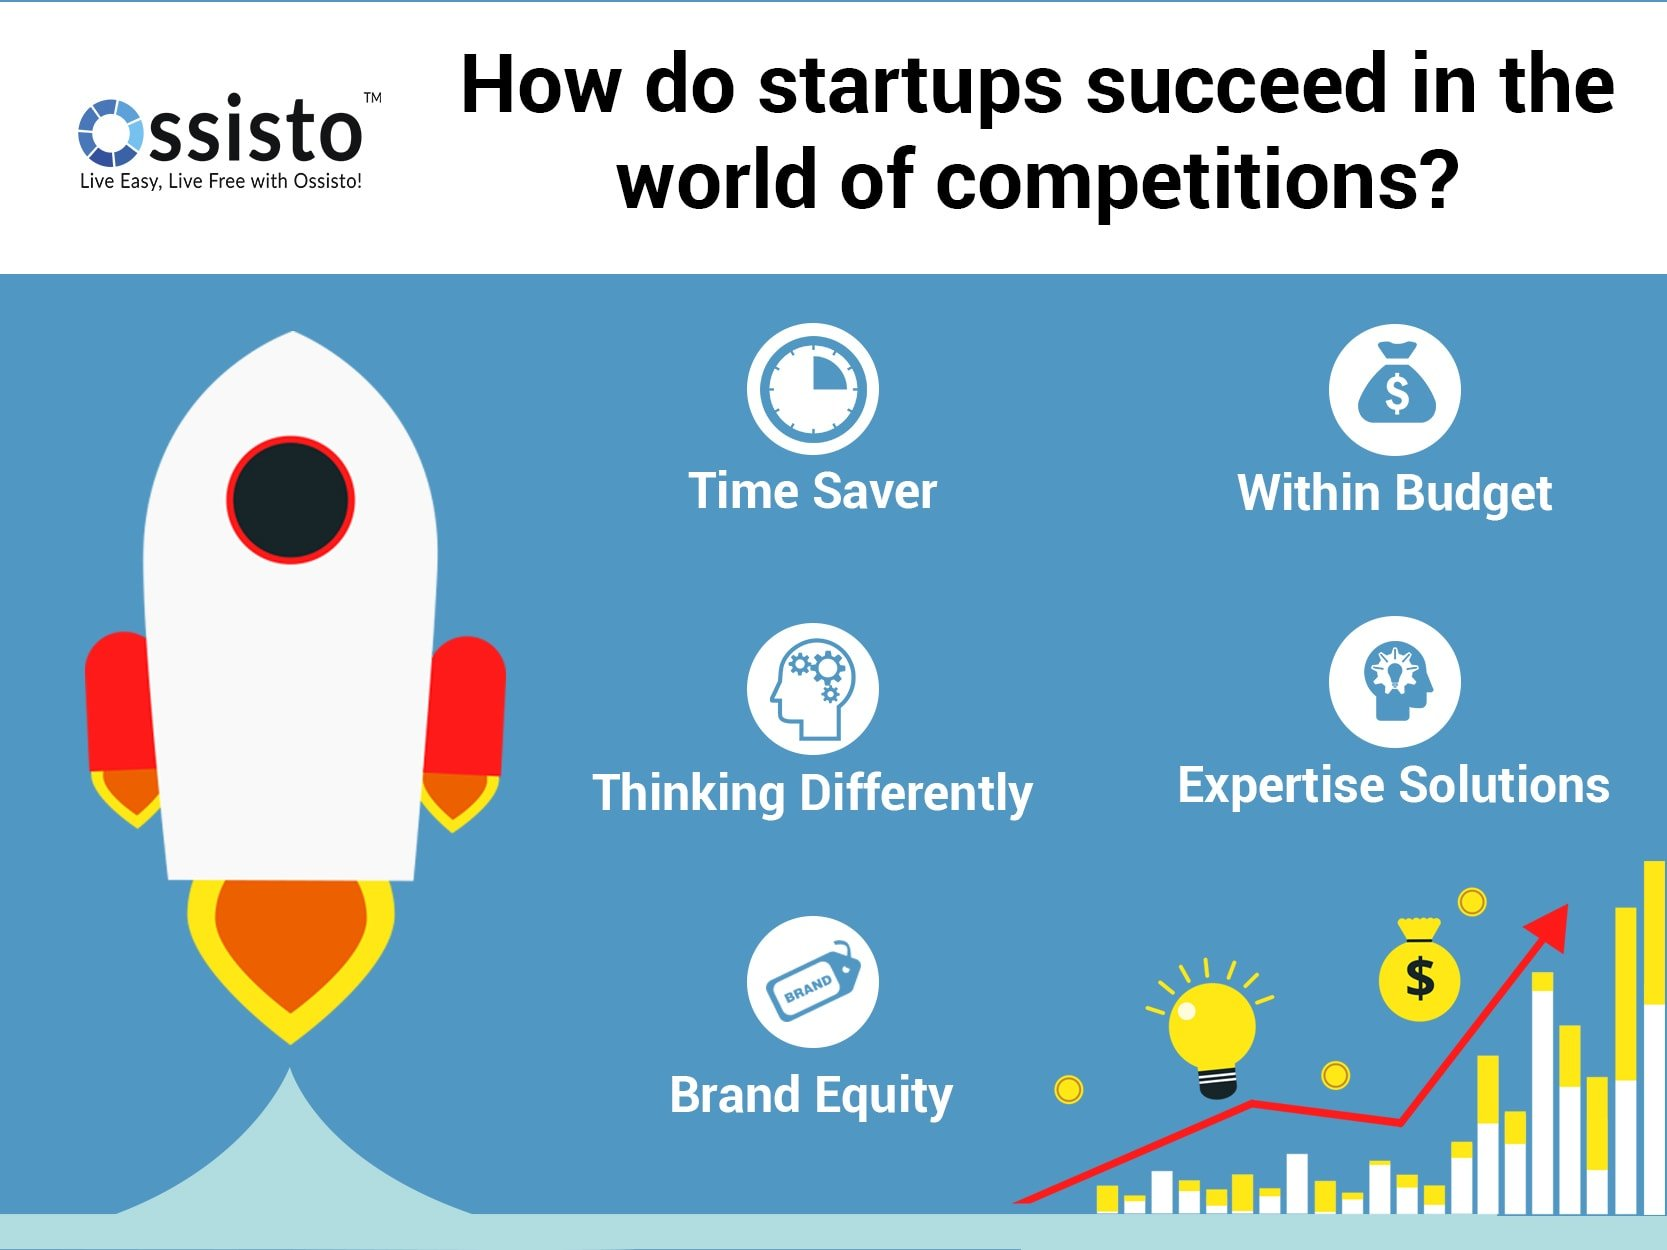 How do startups succeed in the world of competitions?